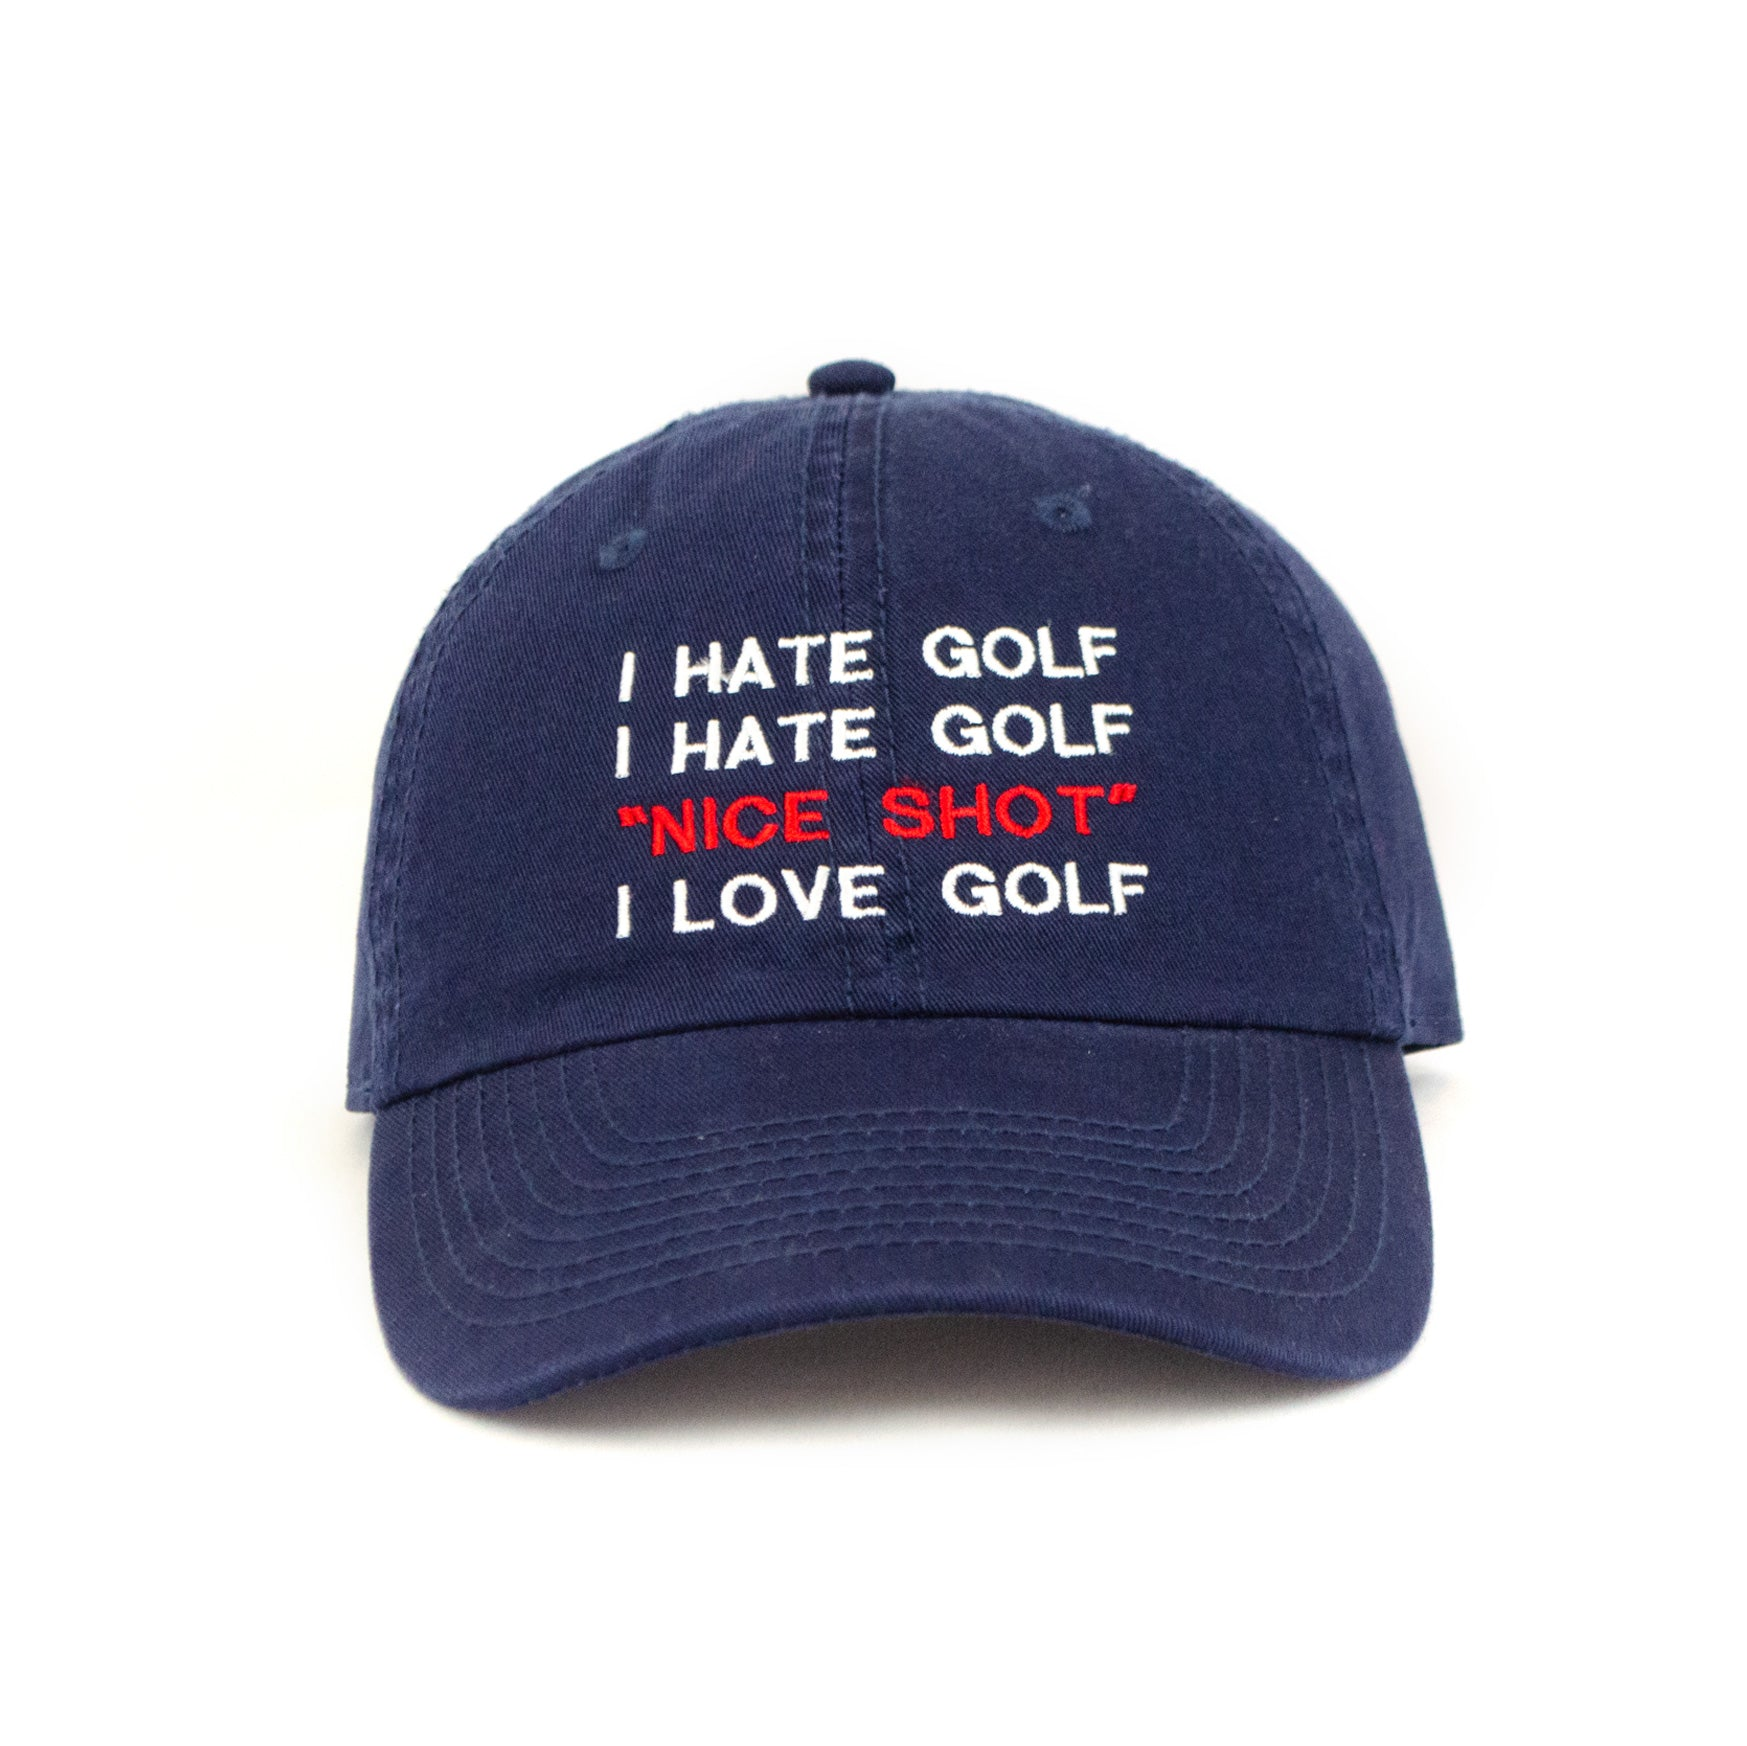 I Hate Golf Make Original Navy Chino Cap